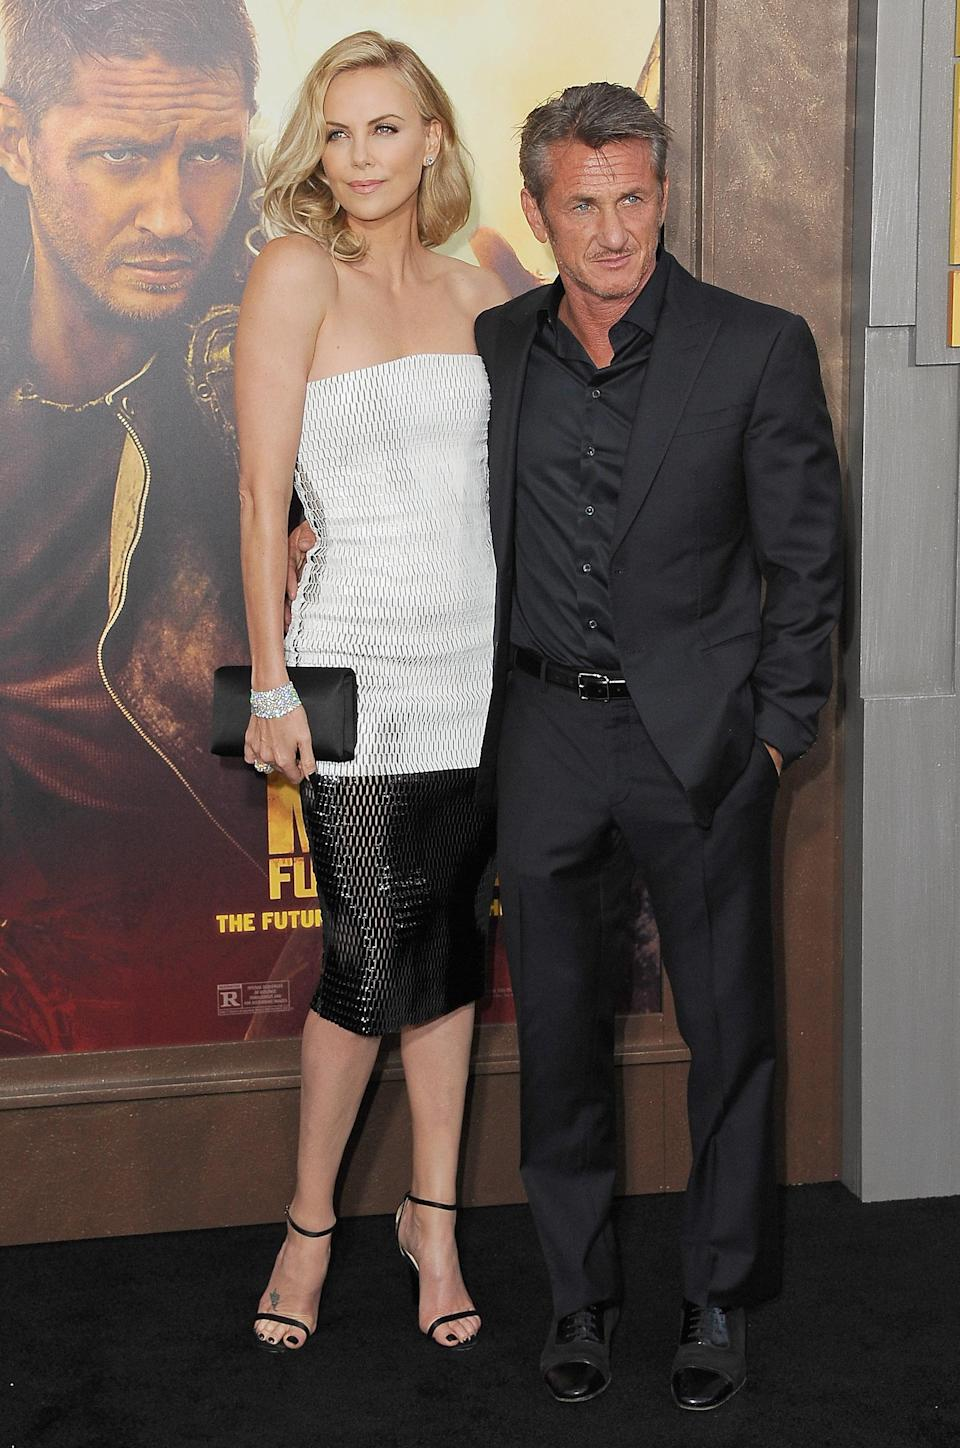 Theron and Penn dated for two years. Image via Getty Images.